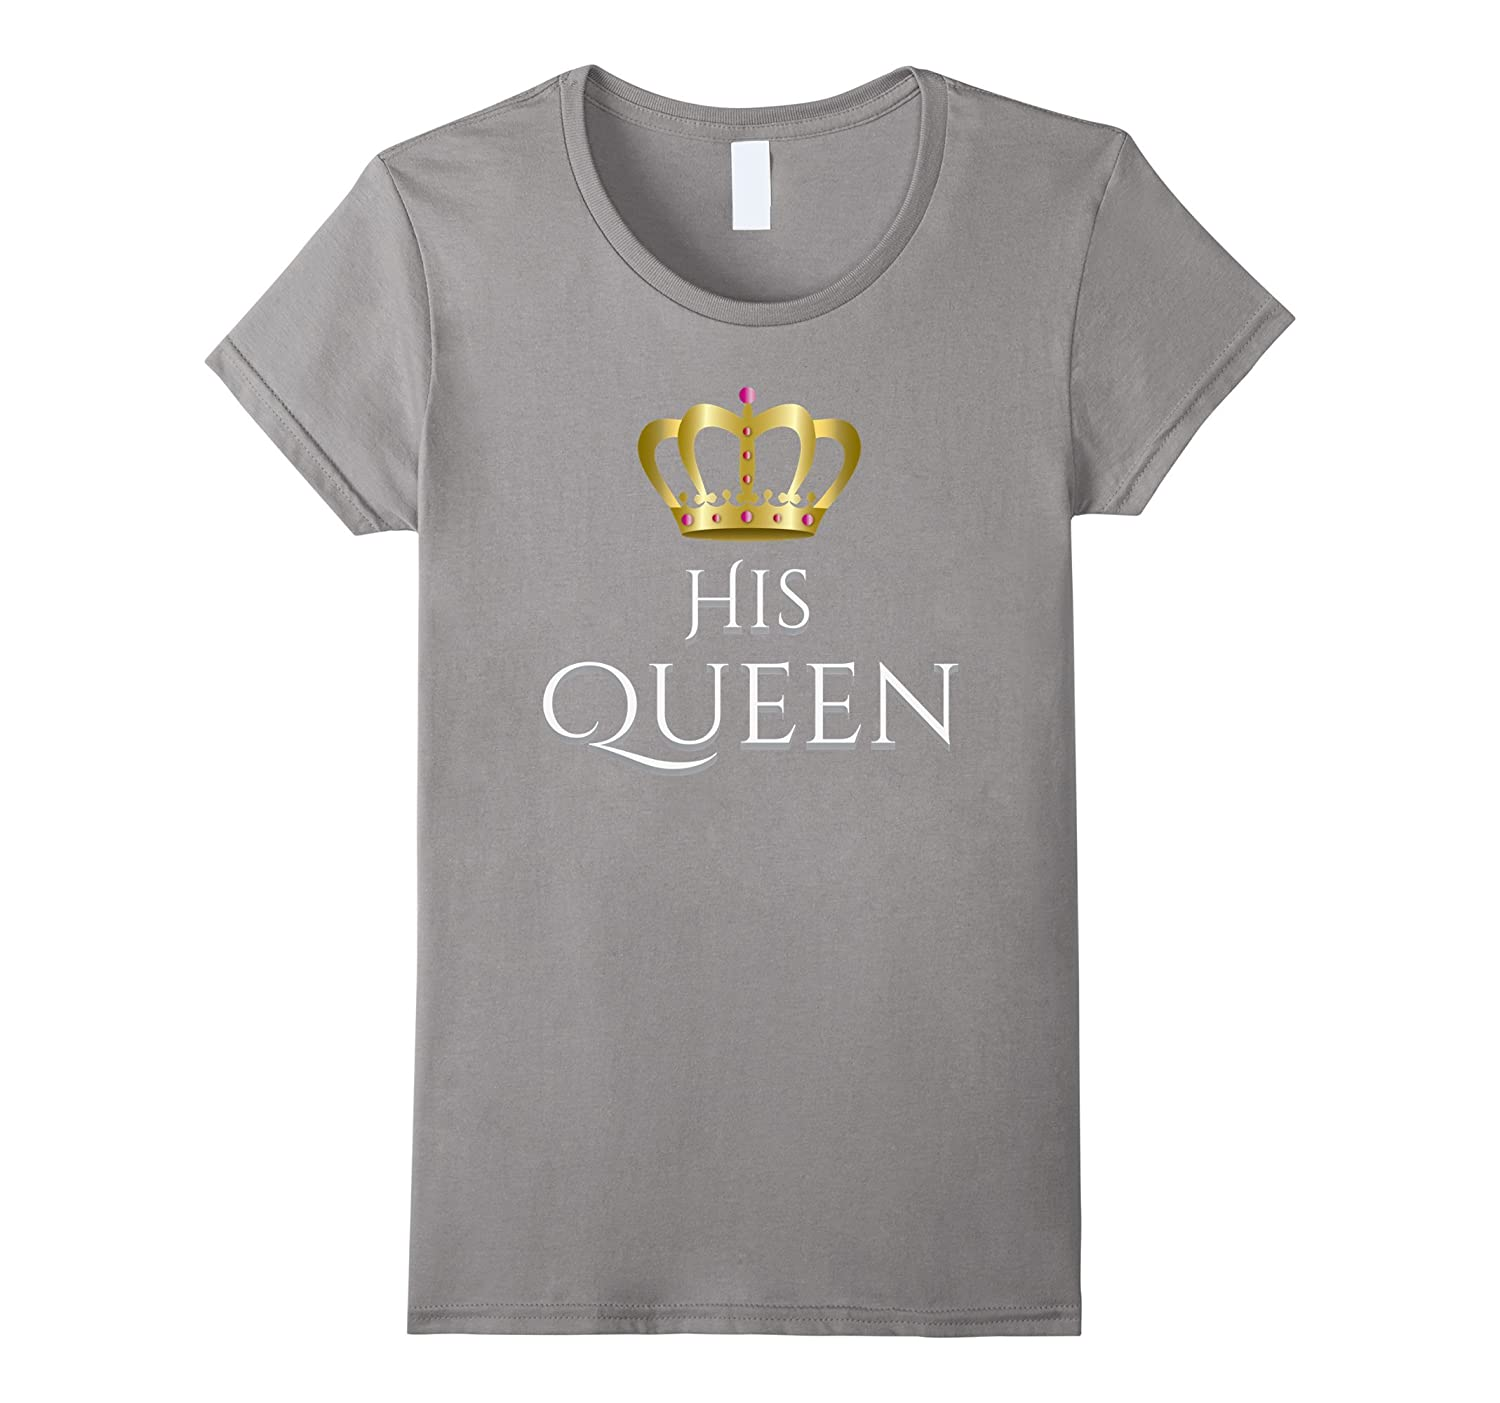 Womens Her King and His Queen Shirts Matching Couple Outfits-FL